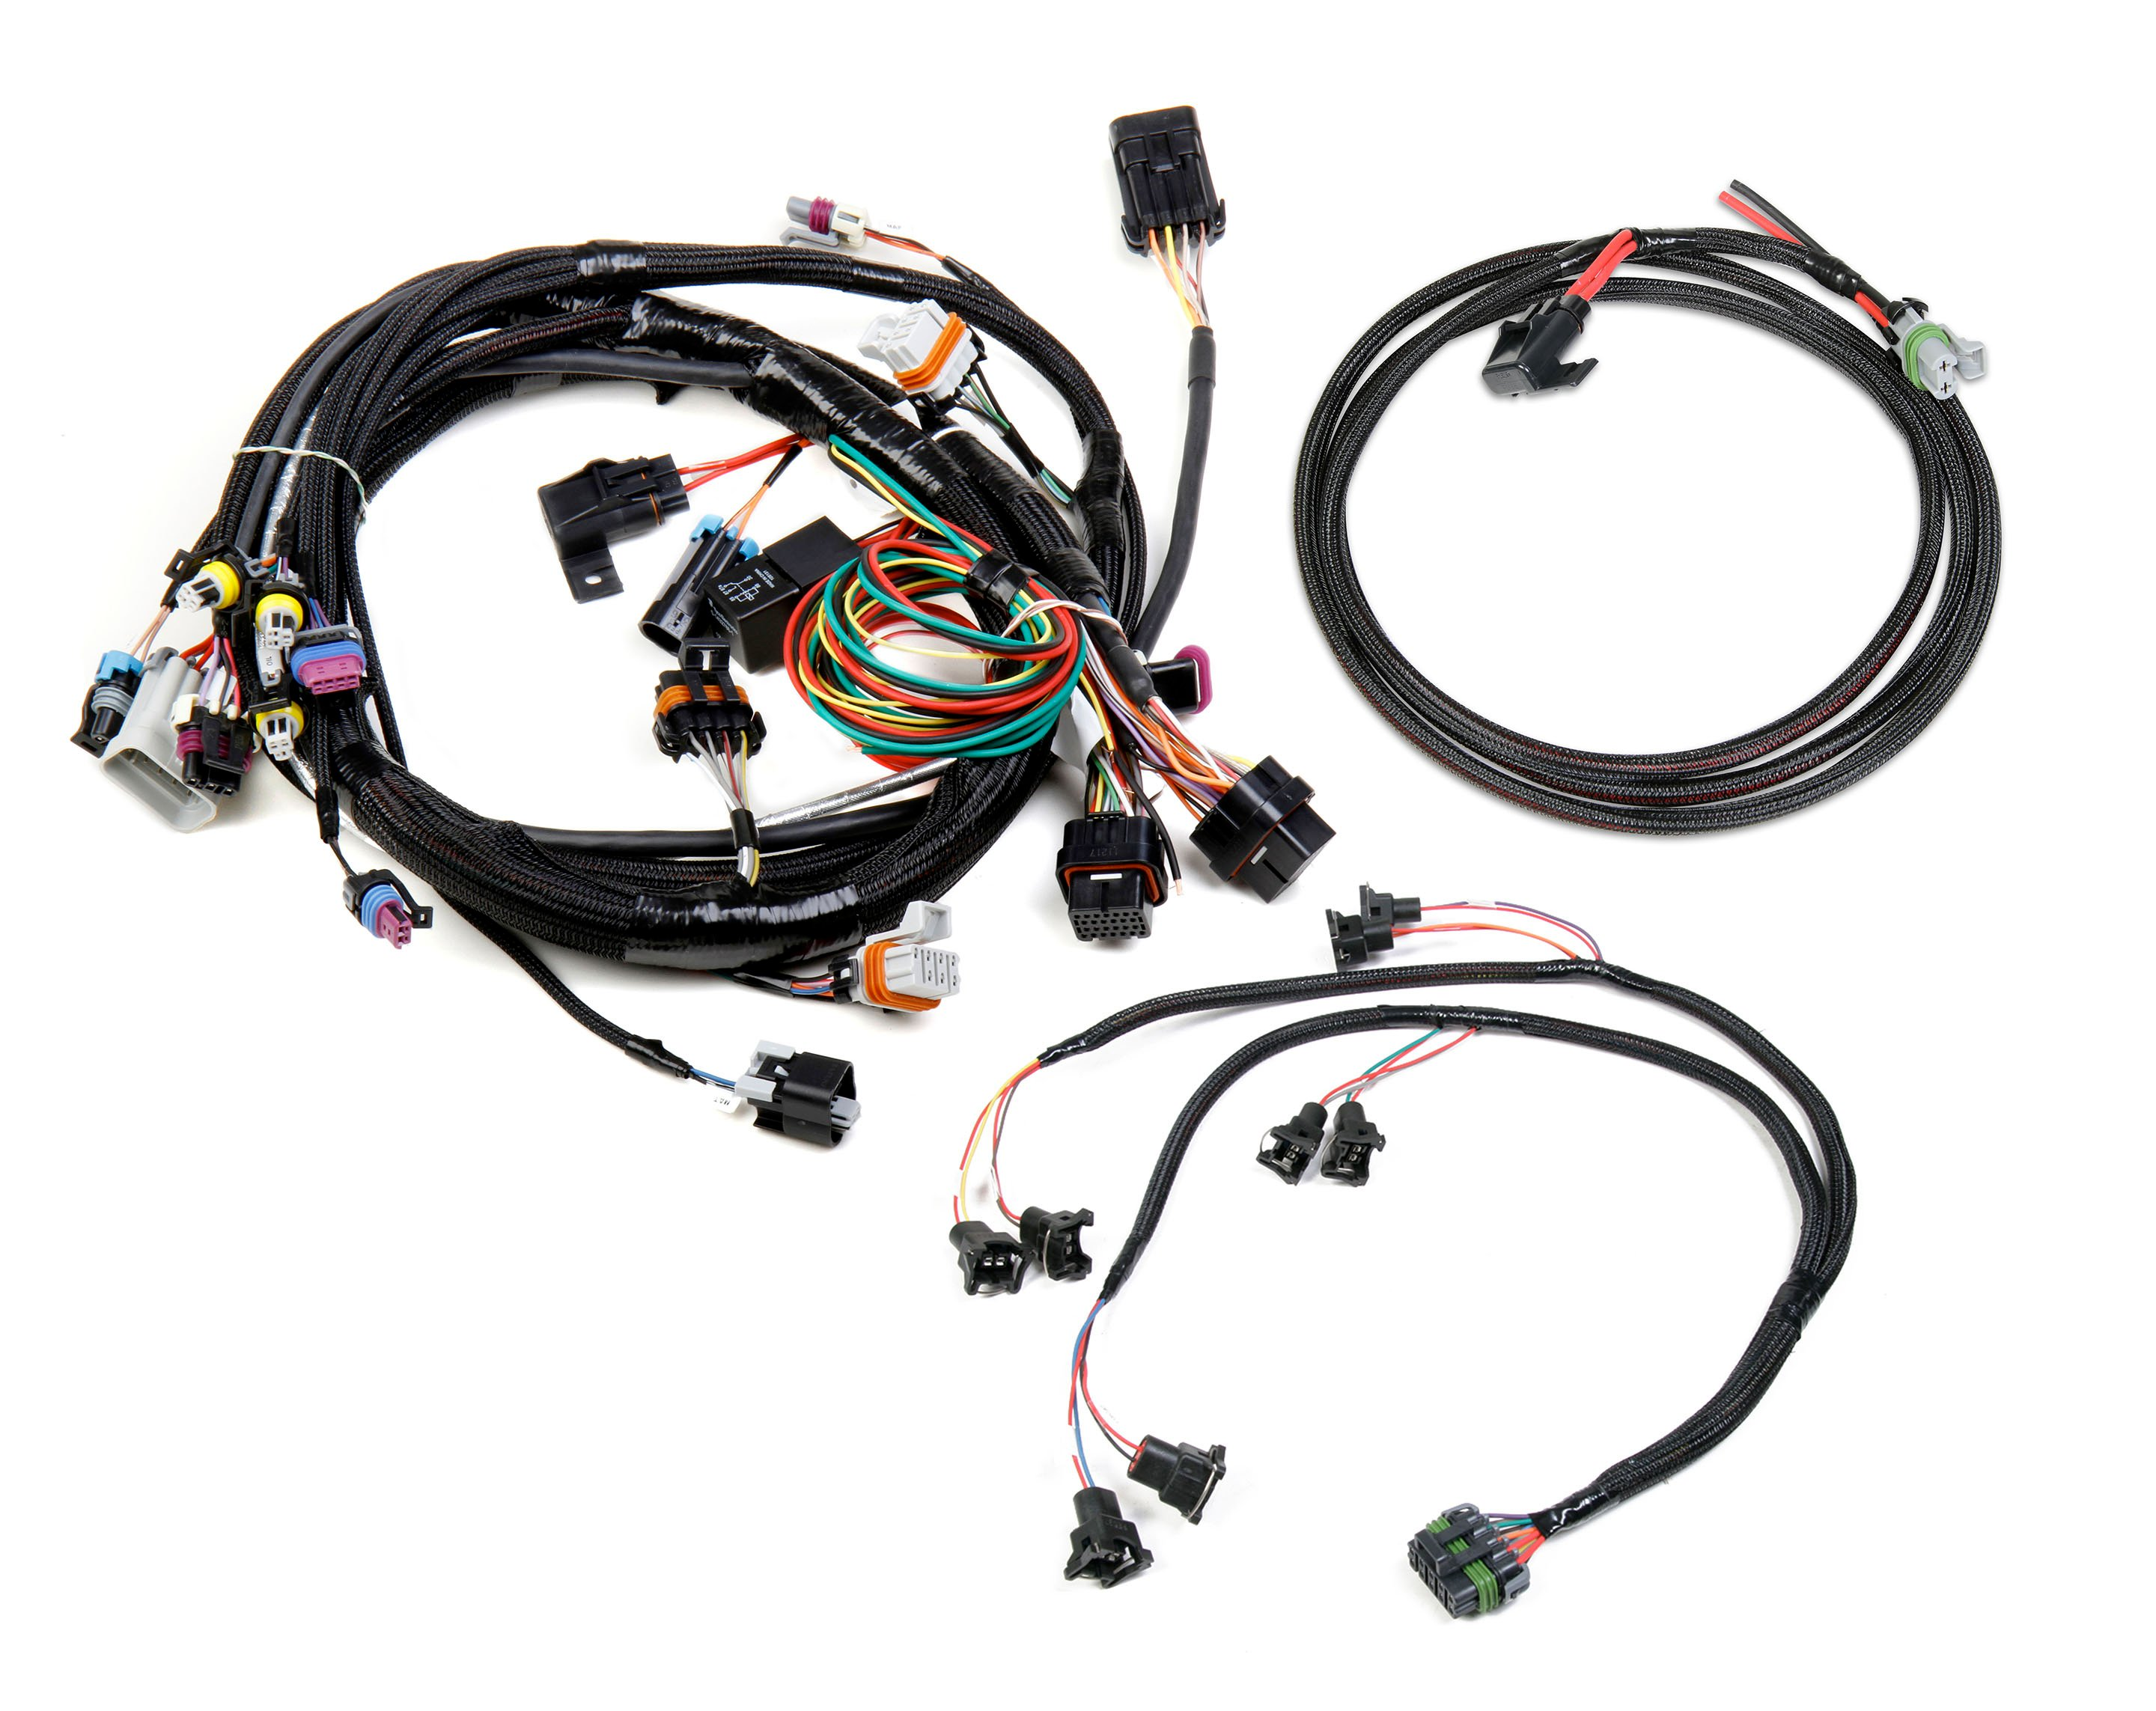 558 500 holley efi 558 500 gm ls 24x efi harness kit holley annihilator wiring diagram at suagrazia.org